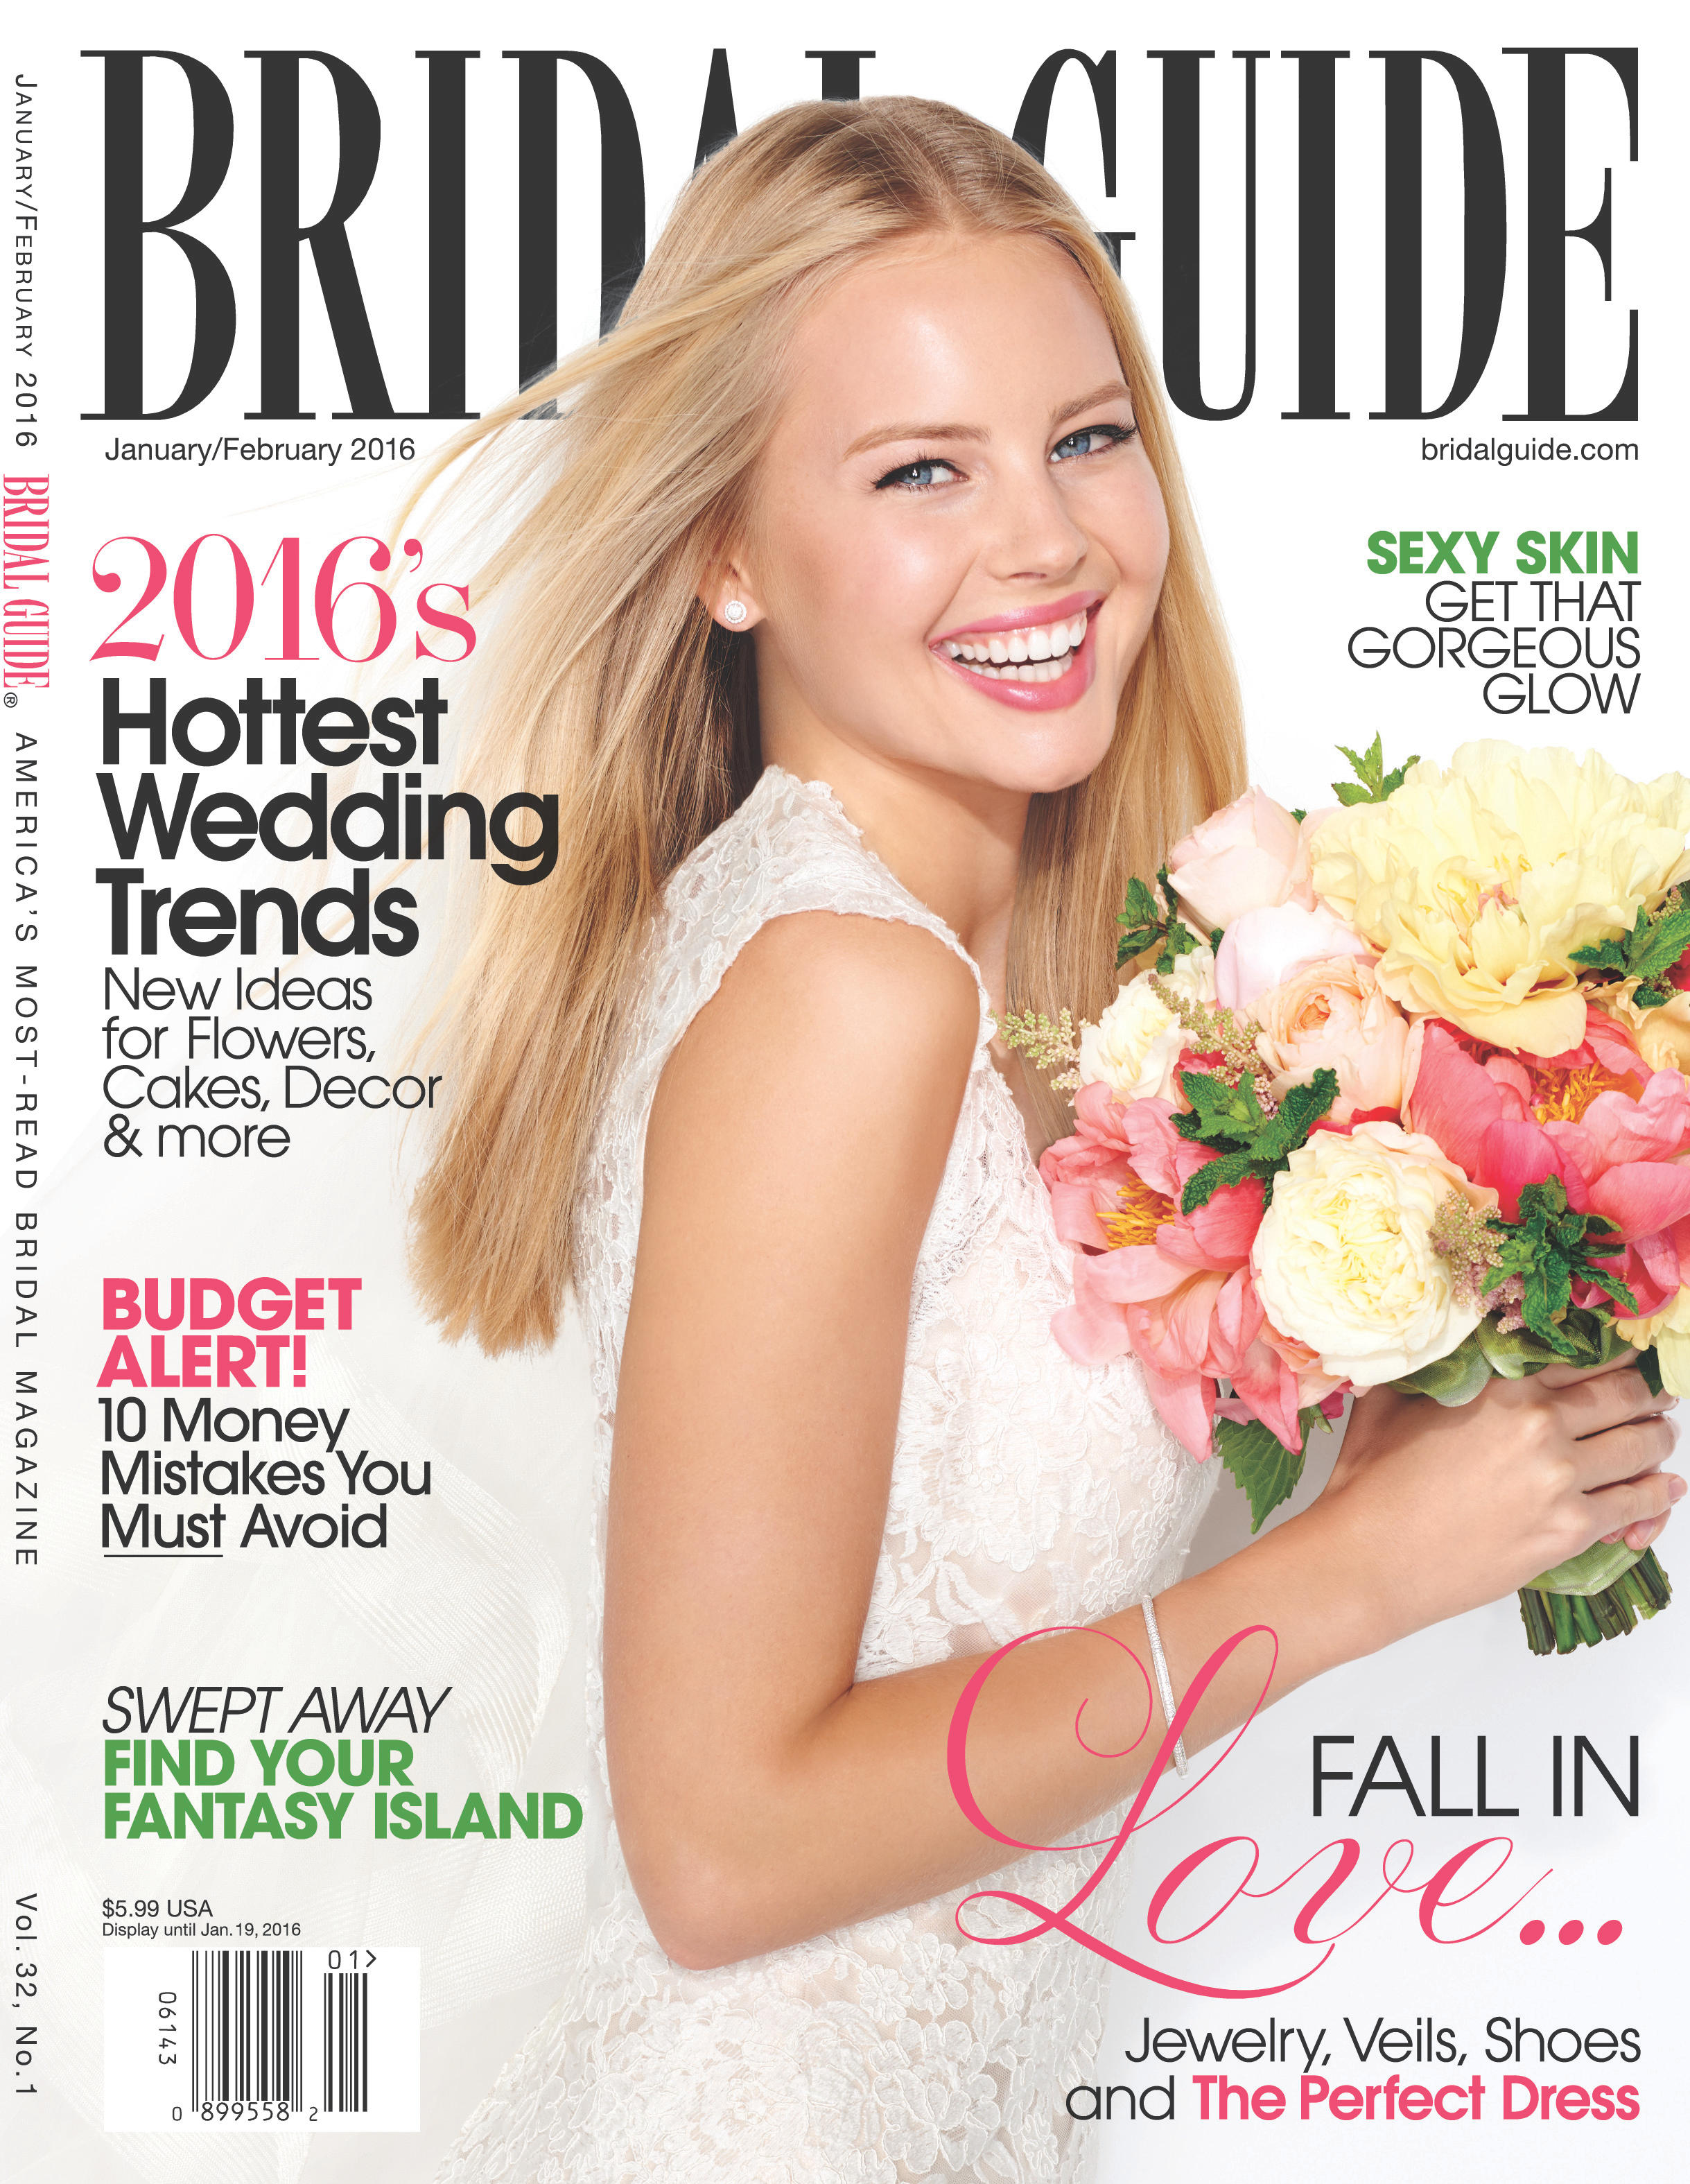 Bridal Guide Magazine: 2016 Wedding Trends